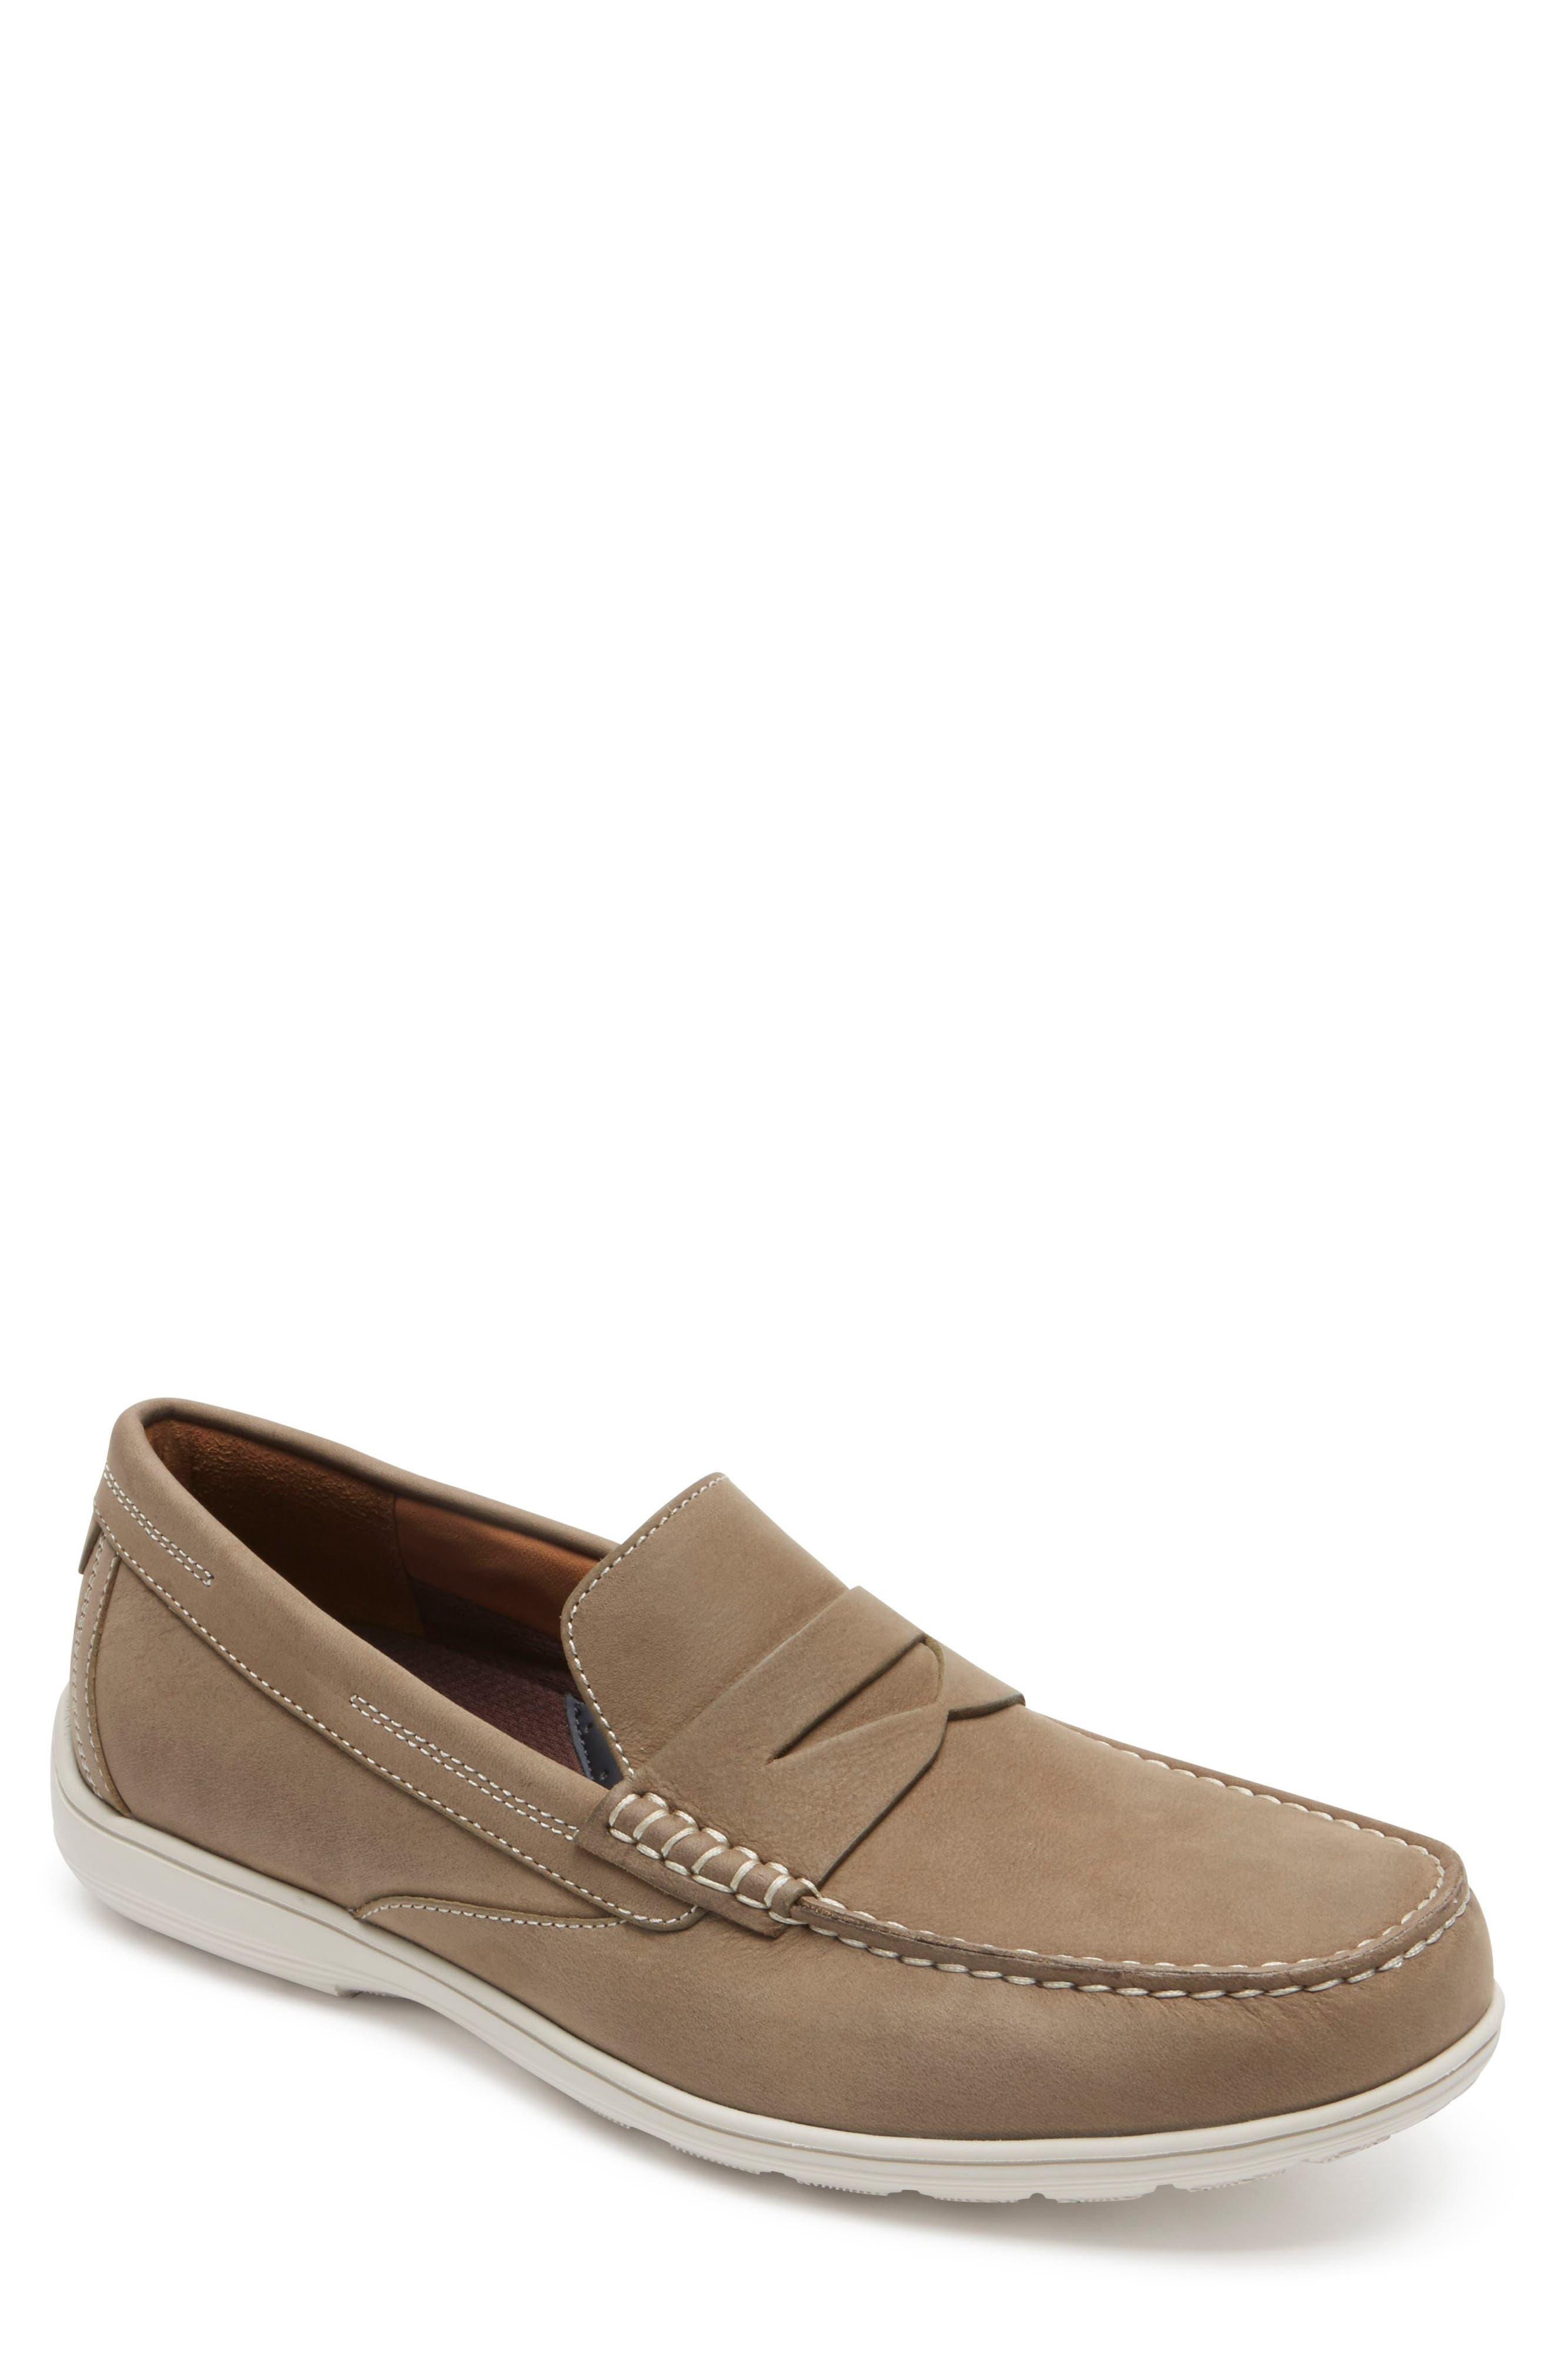 Alternate Image 1 Selected - Rockport Total Motion Penny Loafer (Men)